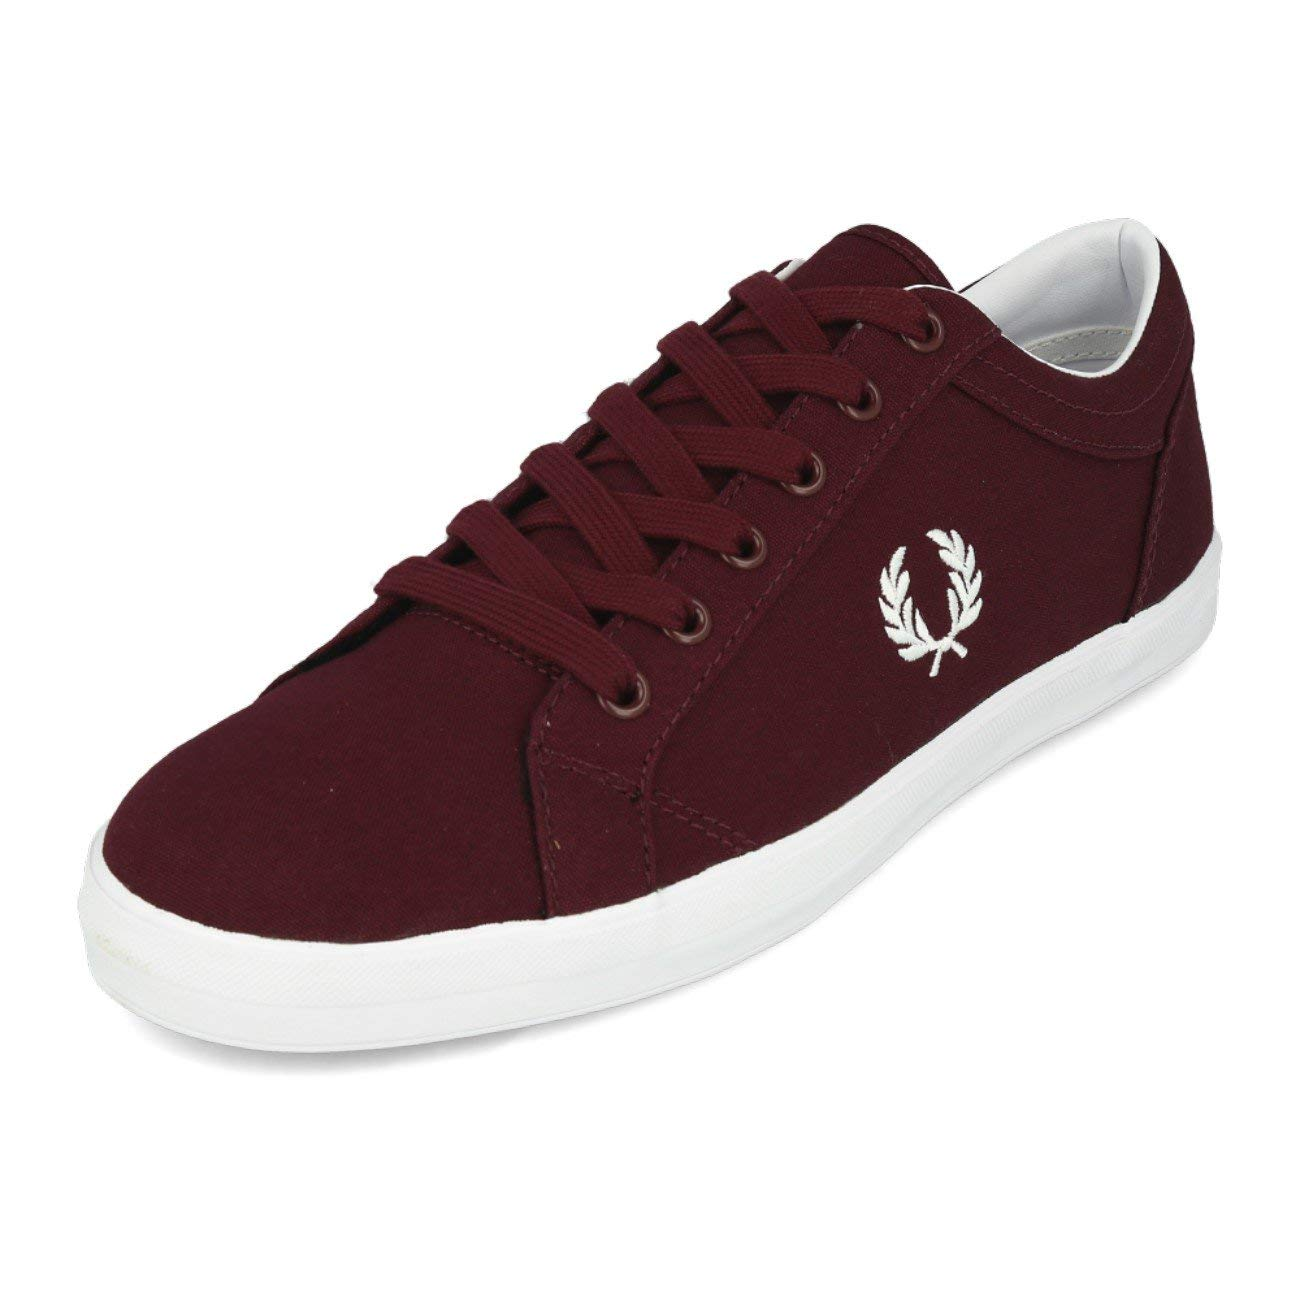 Zapatillas de lona Fred Perry granates